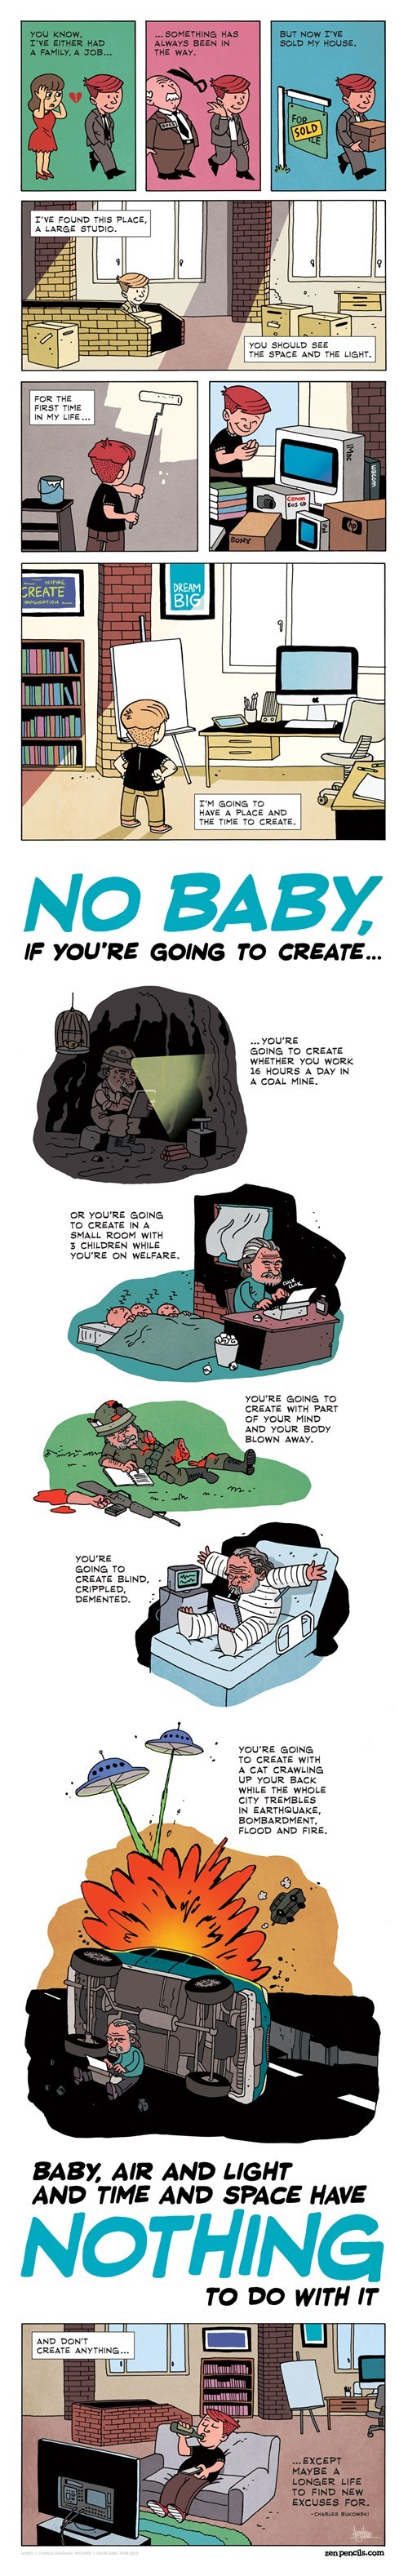 art amazing creation zen pencils